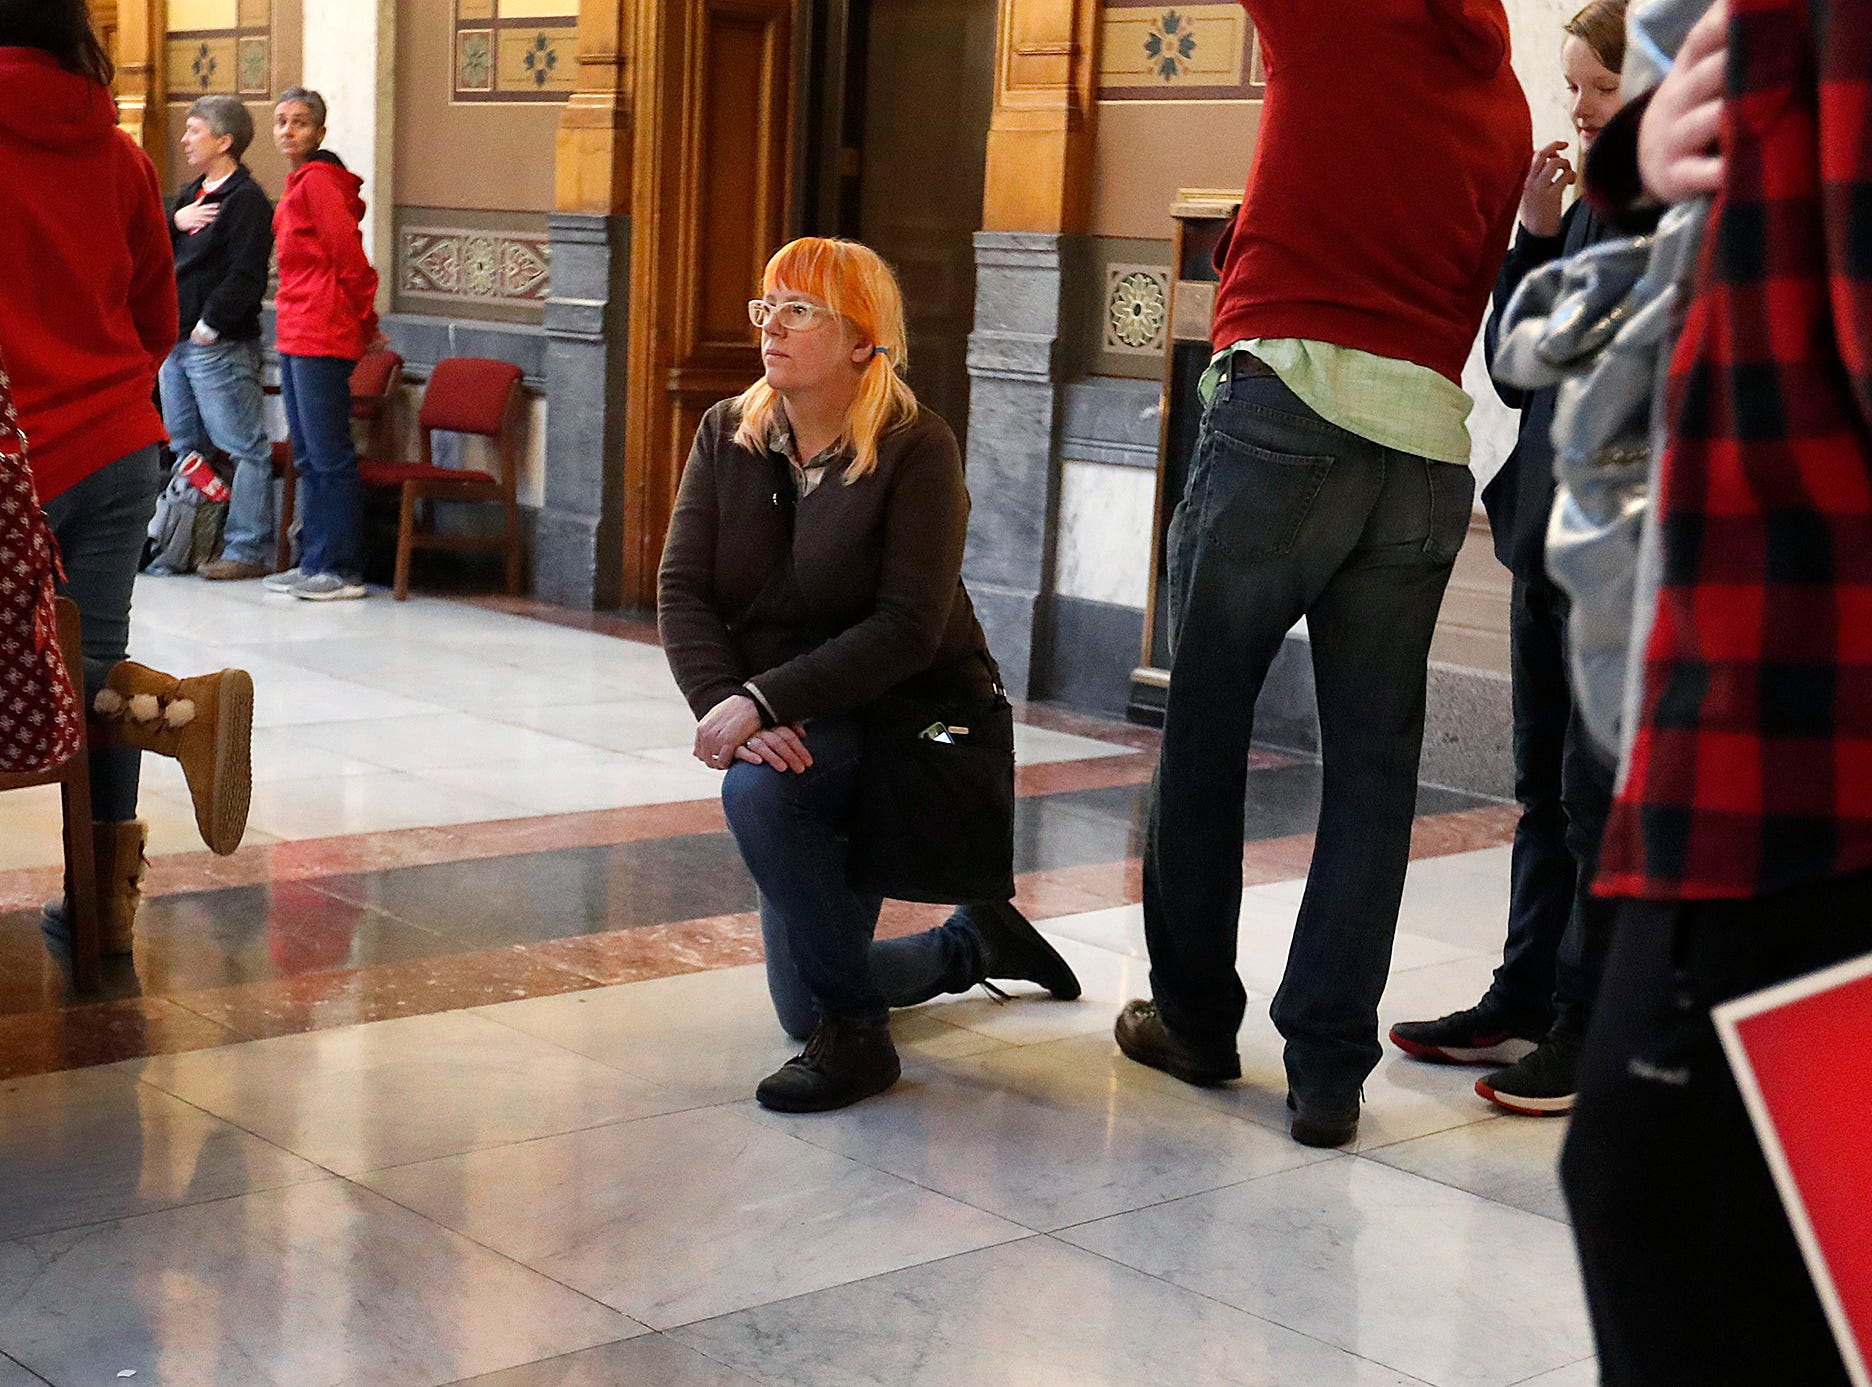 During the playing of the national anthem, one person chose to kneel on one knee in protest at the Indiana Red for Ed Rally at the Indiana Statehouse on Saturday, Mar 9, 2019. Teachers, educators and supporters were on hand to support public education and demand lawmakers provide more resources for our kids and increased pay for teachers.